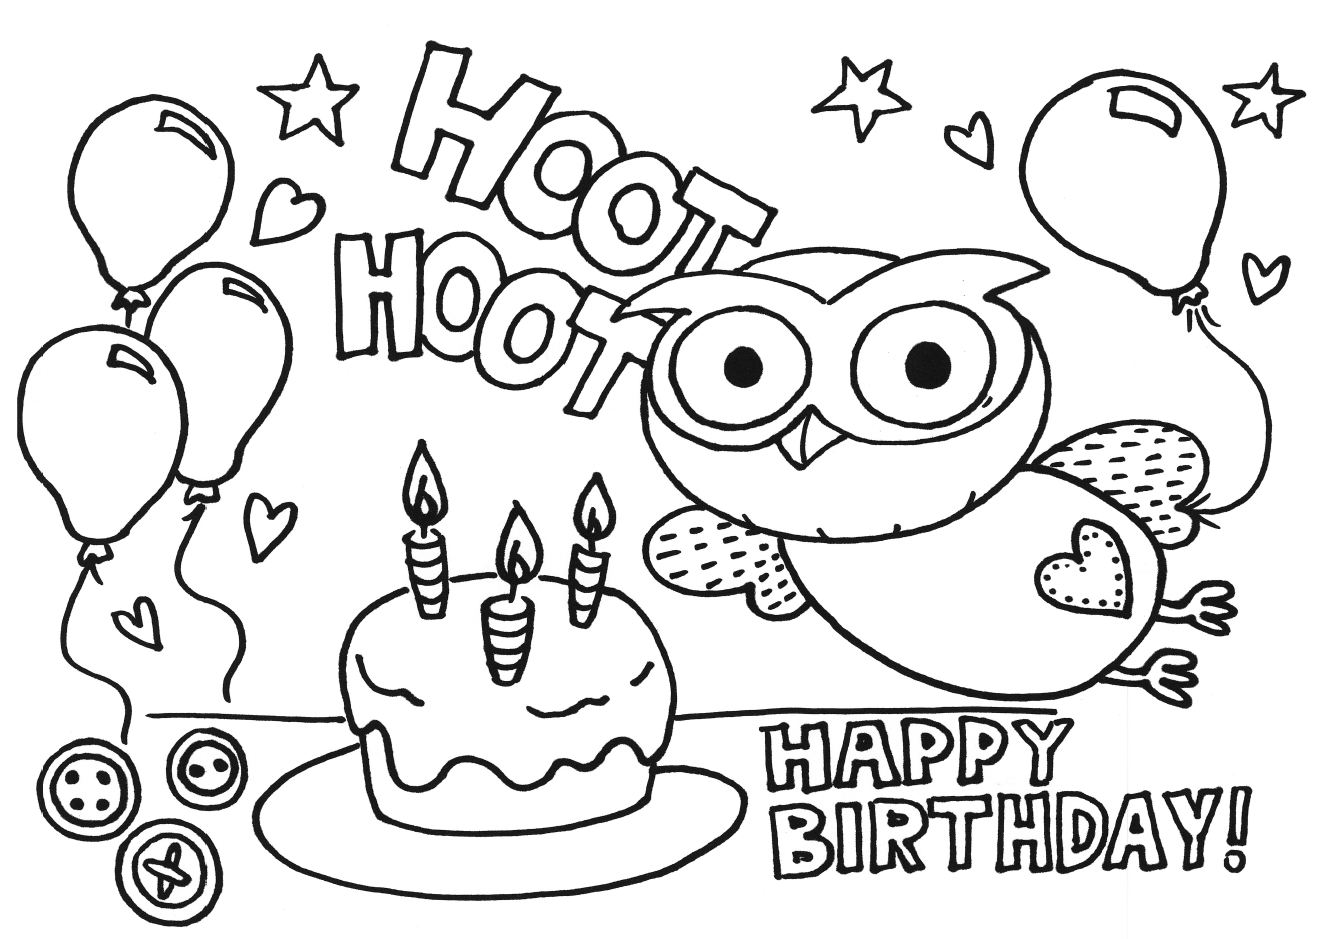 6 Images of Happy Birthday Printable Sheets